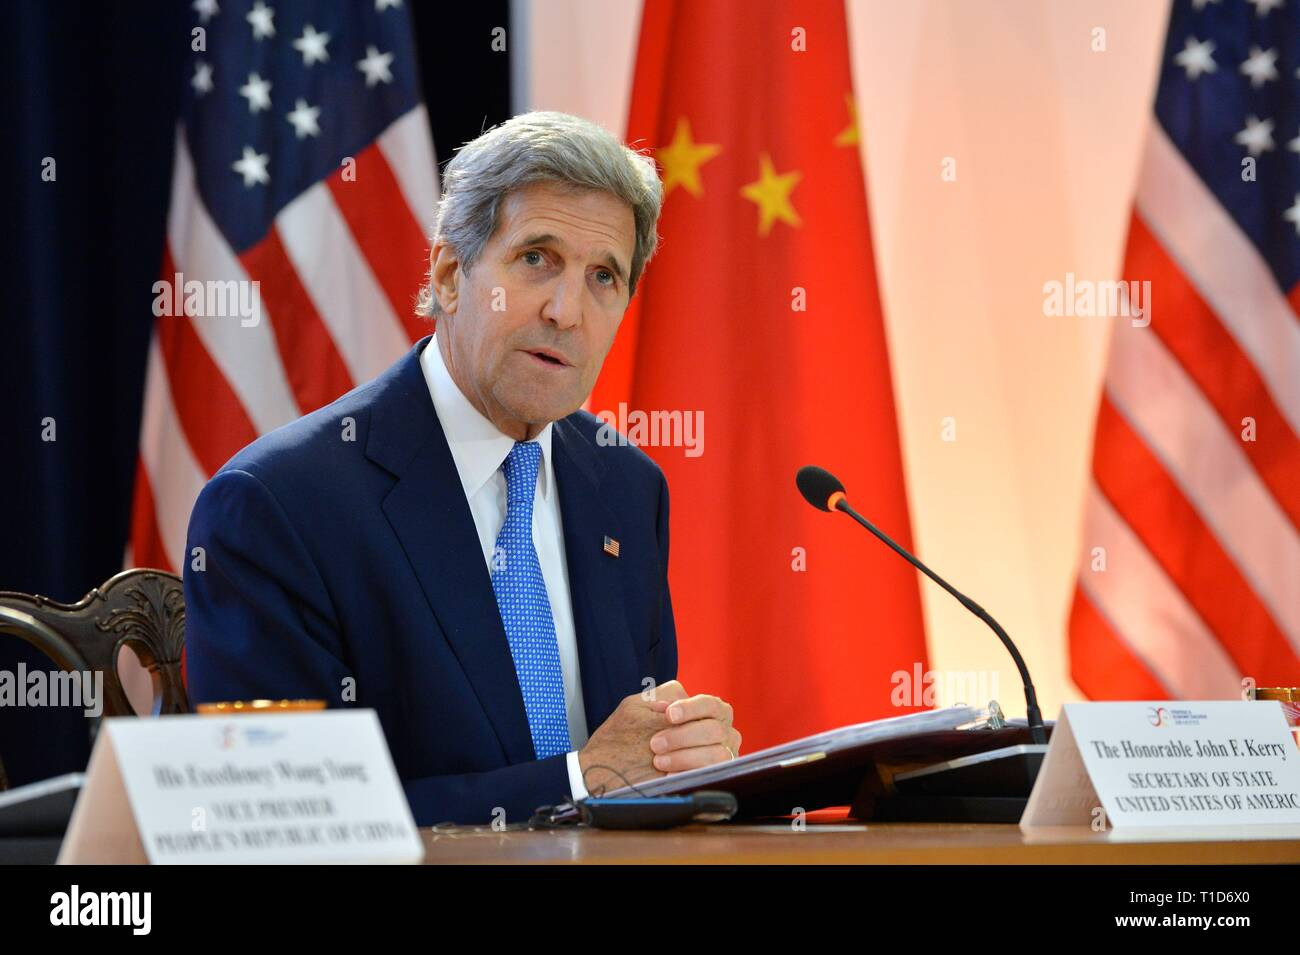 U.S. Secretary of State John Kerry delivers remarks at the U.S.-China Strategic and Economic Dialogue (S&ED) / Consultation on People-to-People Exchan - Stock Image